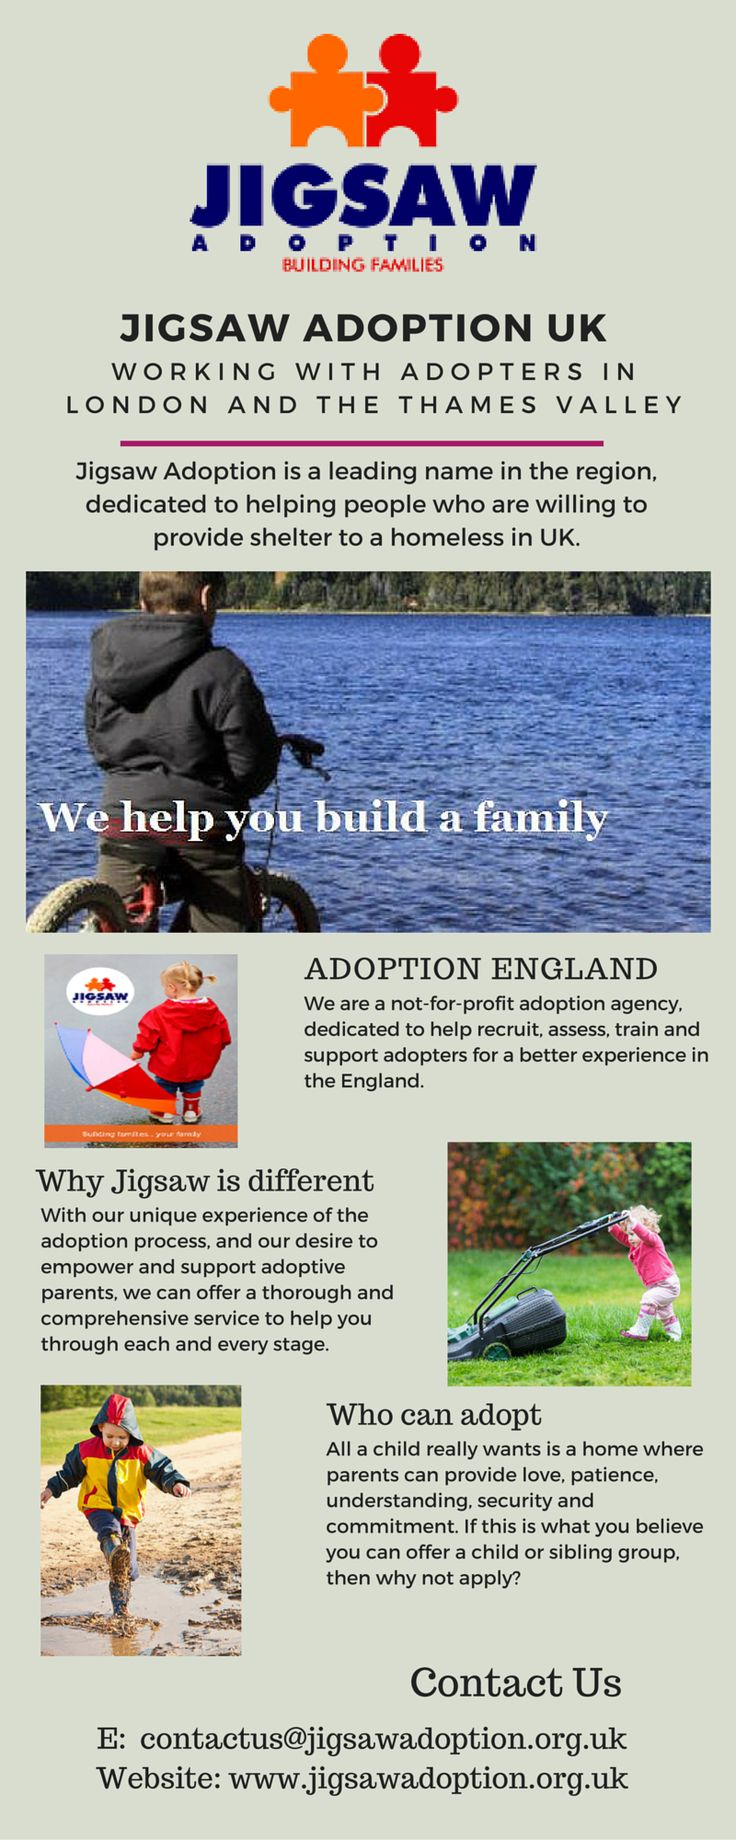 Adopt A Child In The Uk You Need To Be Approved To Adopt By An Adoption